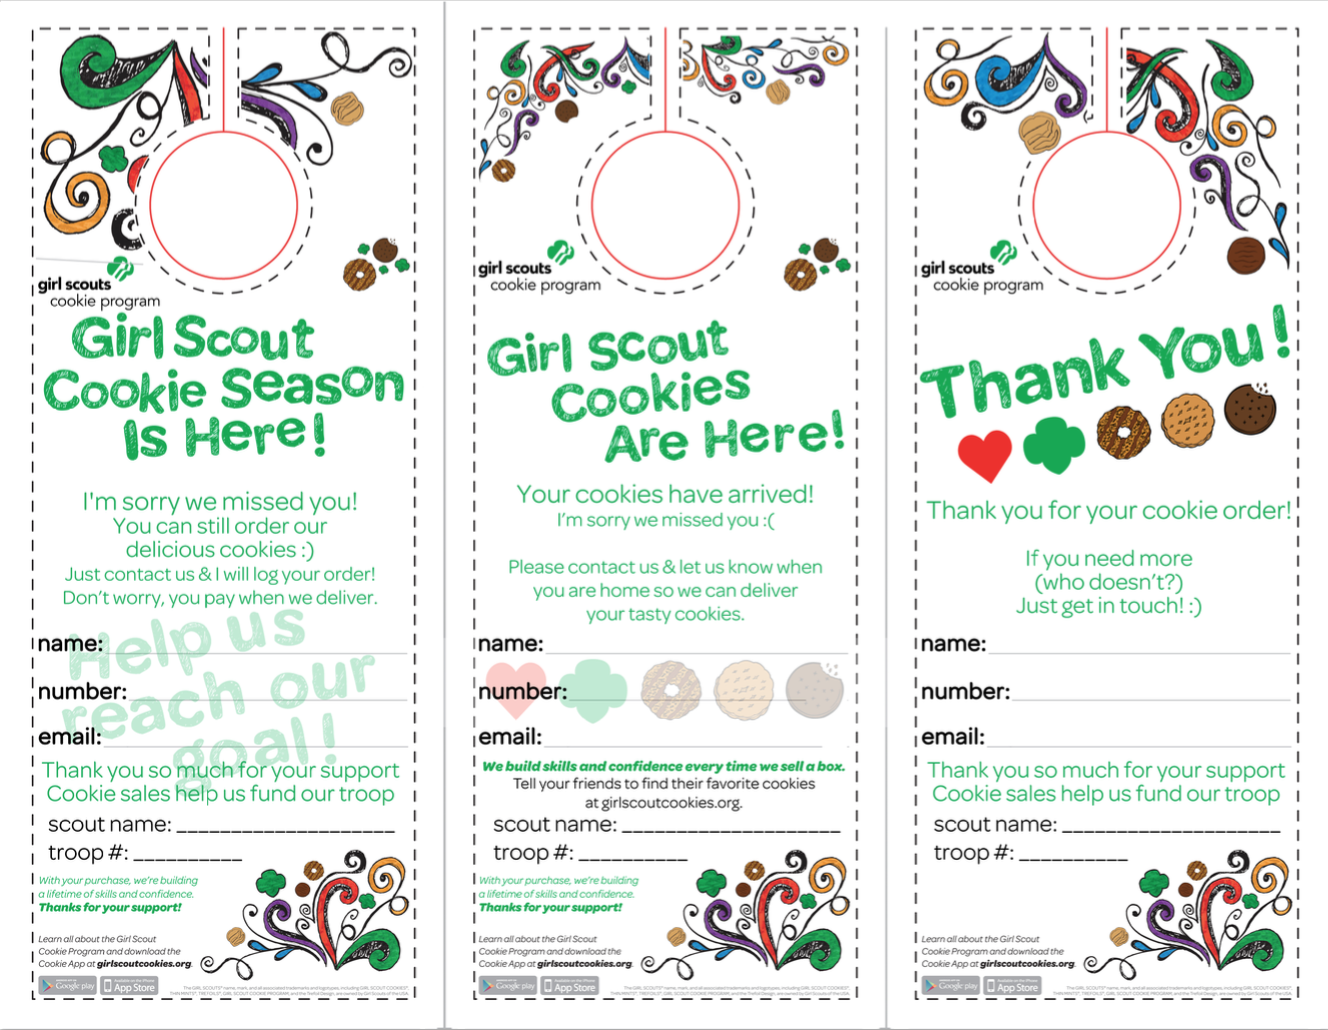 graphic regarding Girl Scout Cookie Thank You Note Printable called Absolutely free Female Scout Cookie Printable Up-to-date 2019! Changed